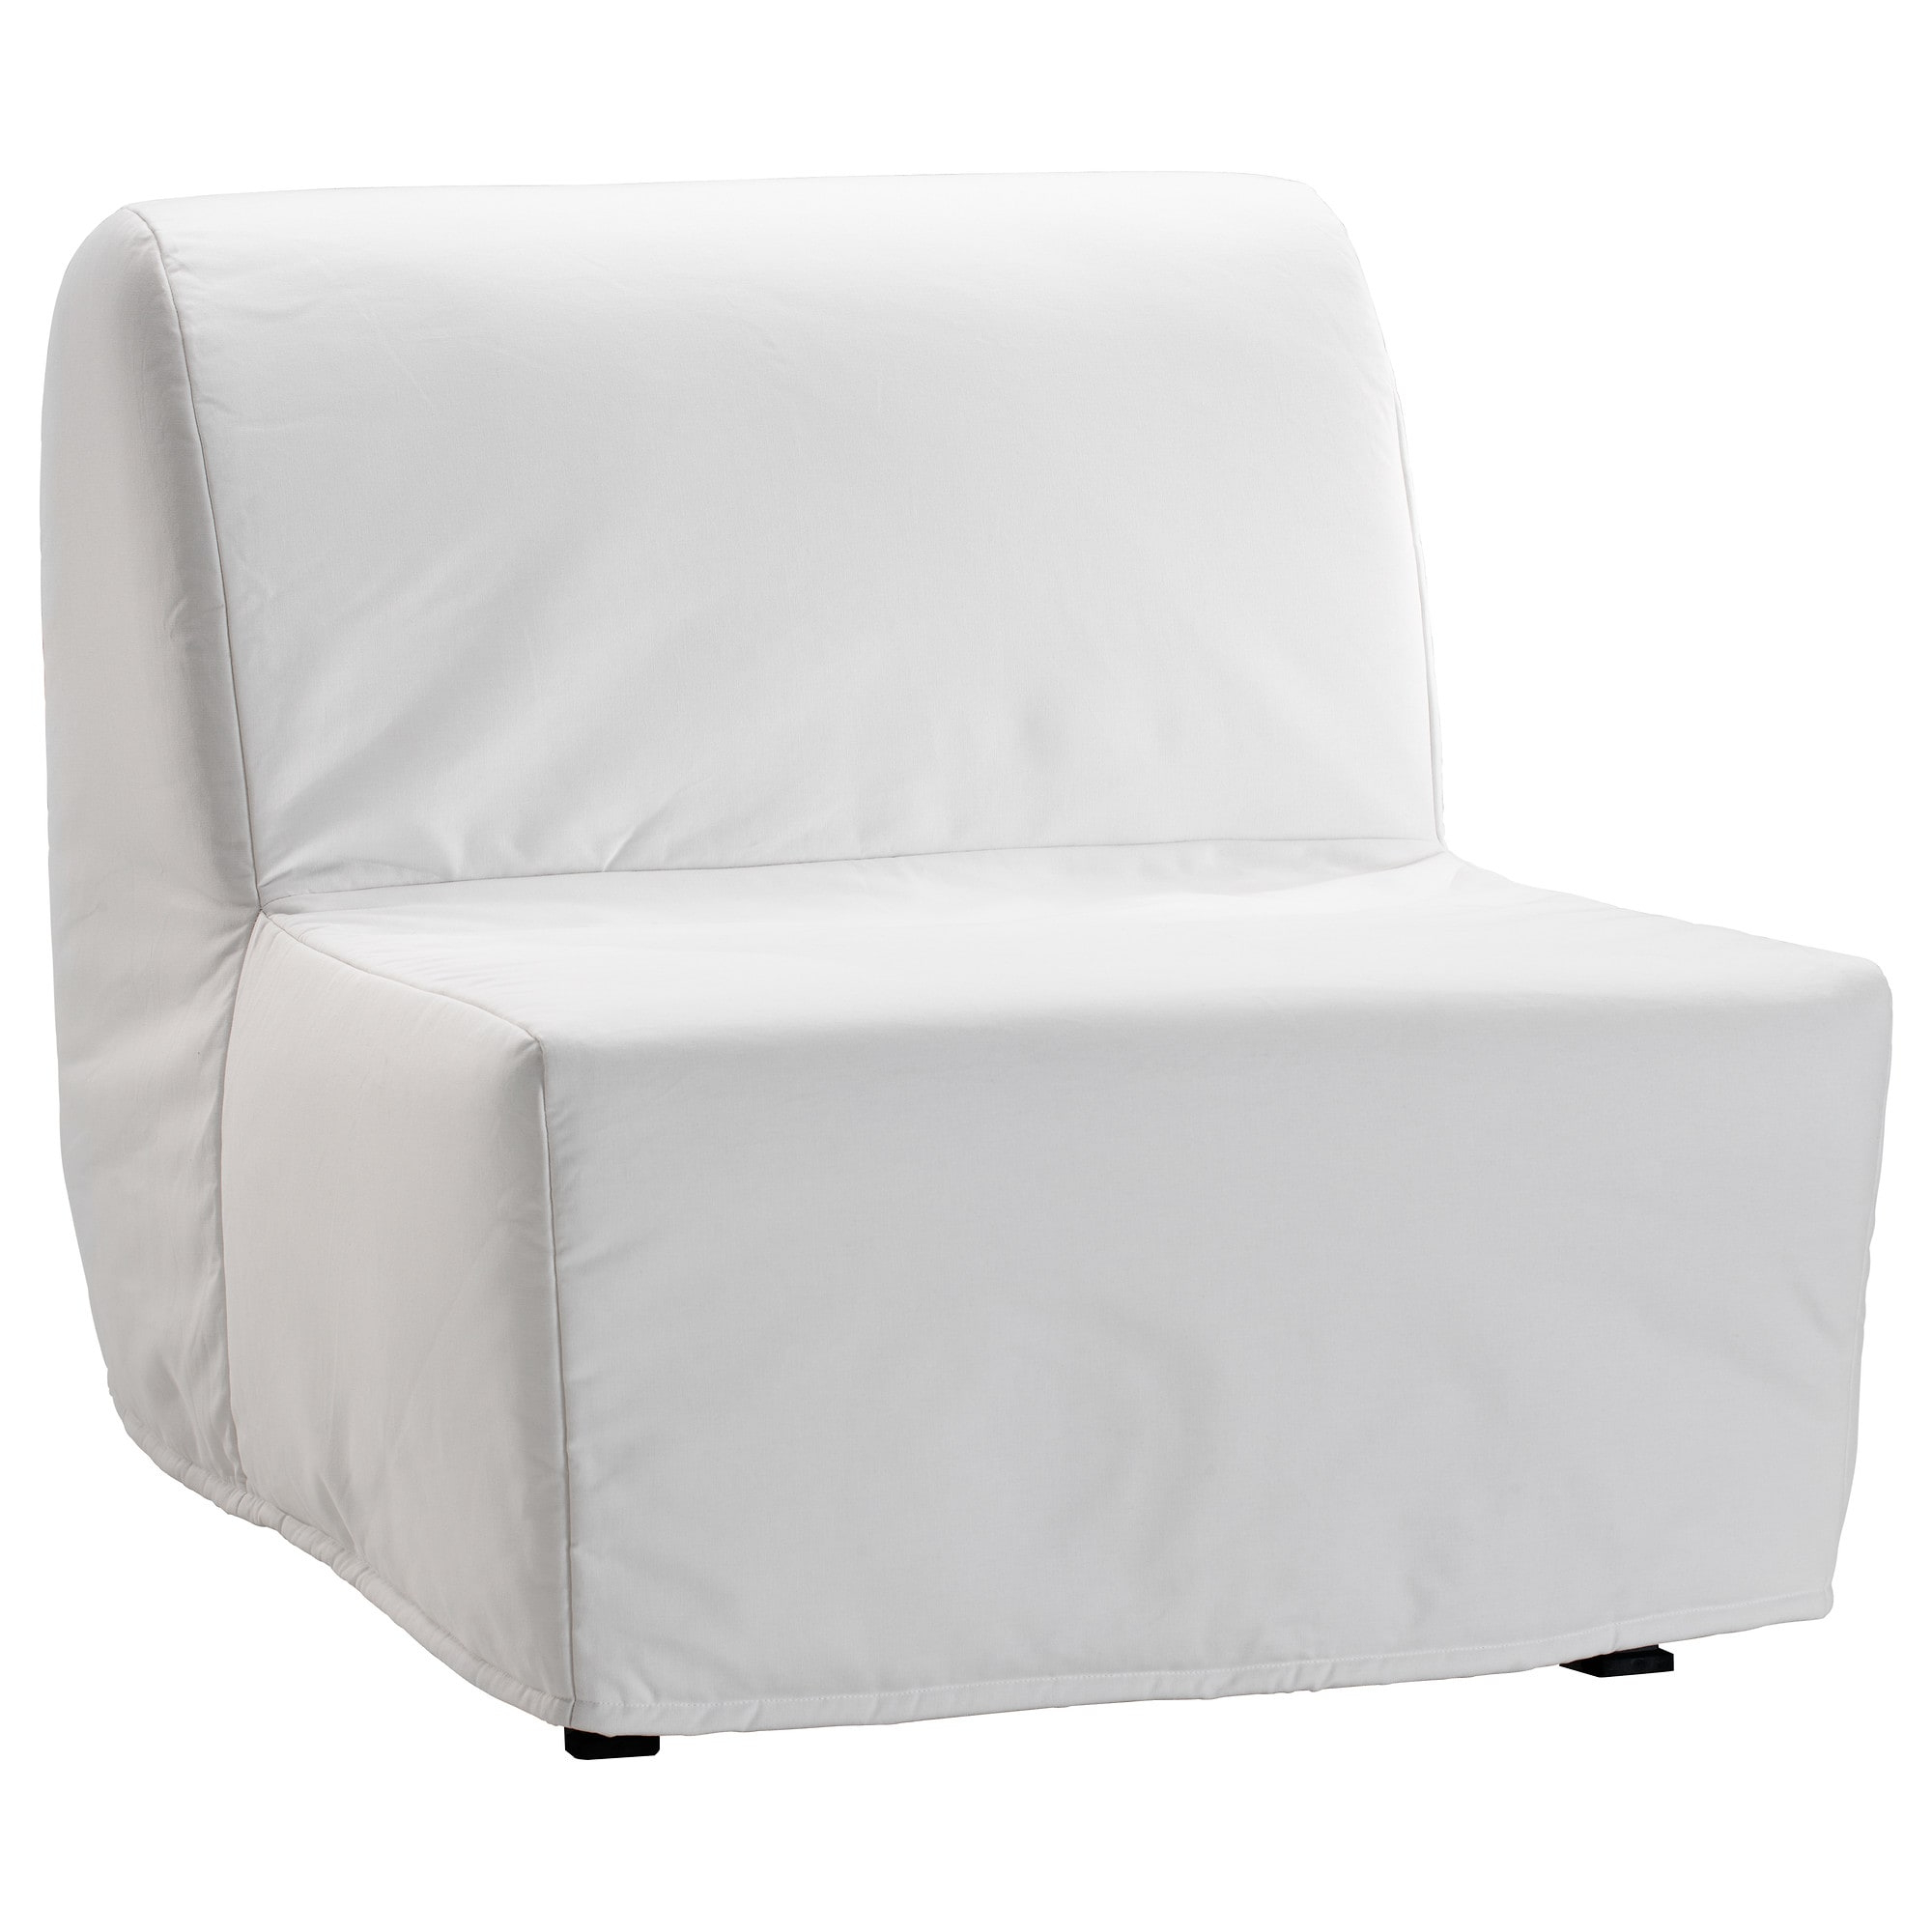 Lycksele Lövås Chair Bed Ransta White – Ikea Within Most Popular Ikea Sofa Chairs (View 11 of 20)